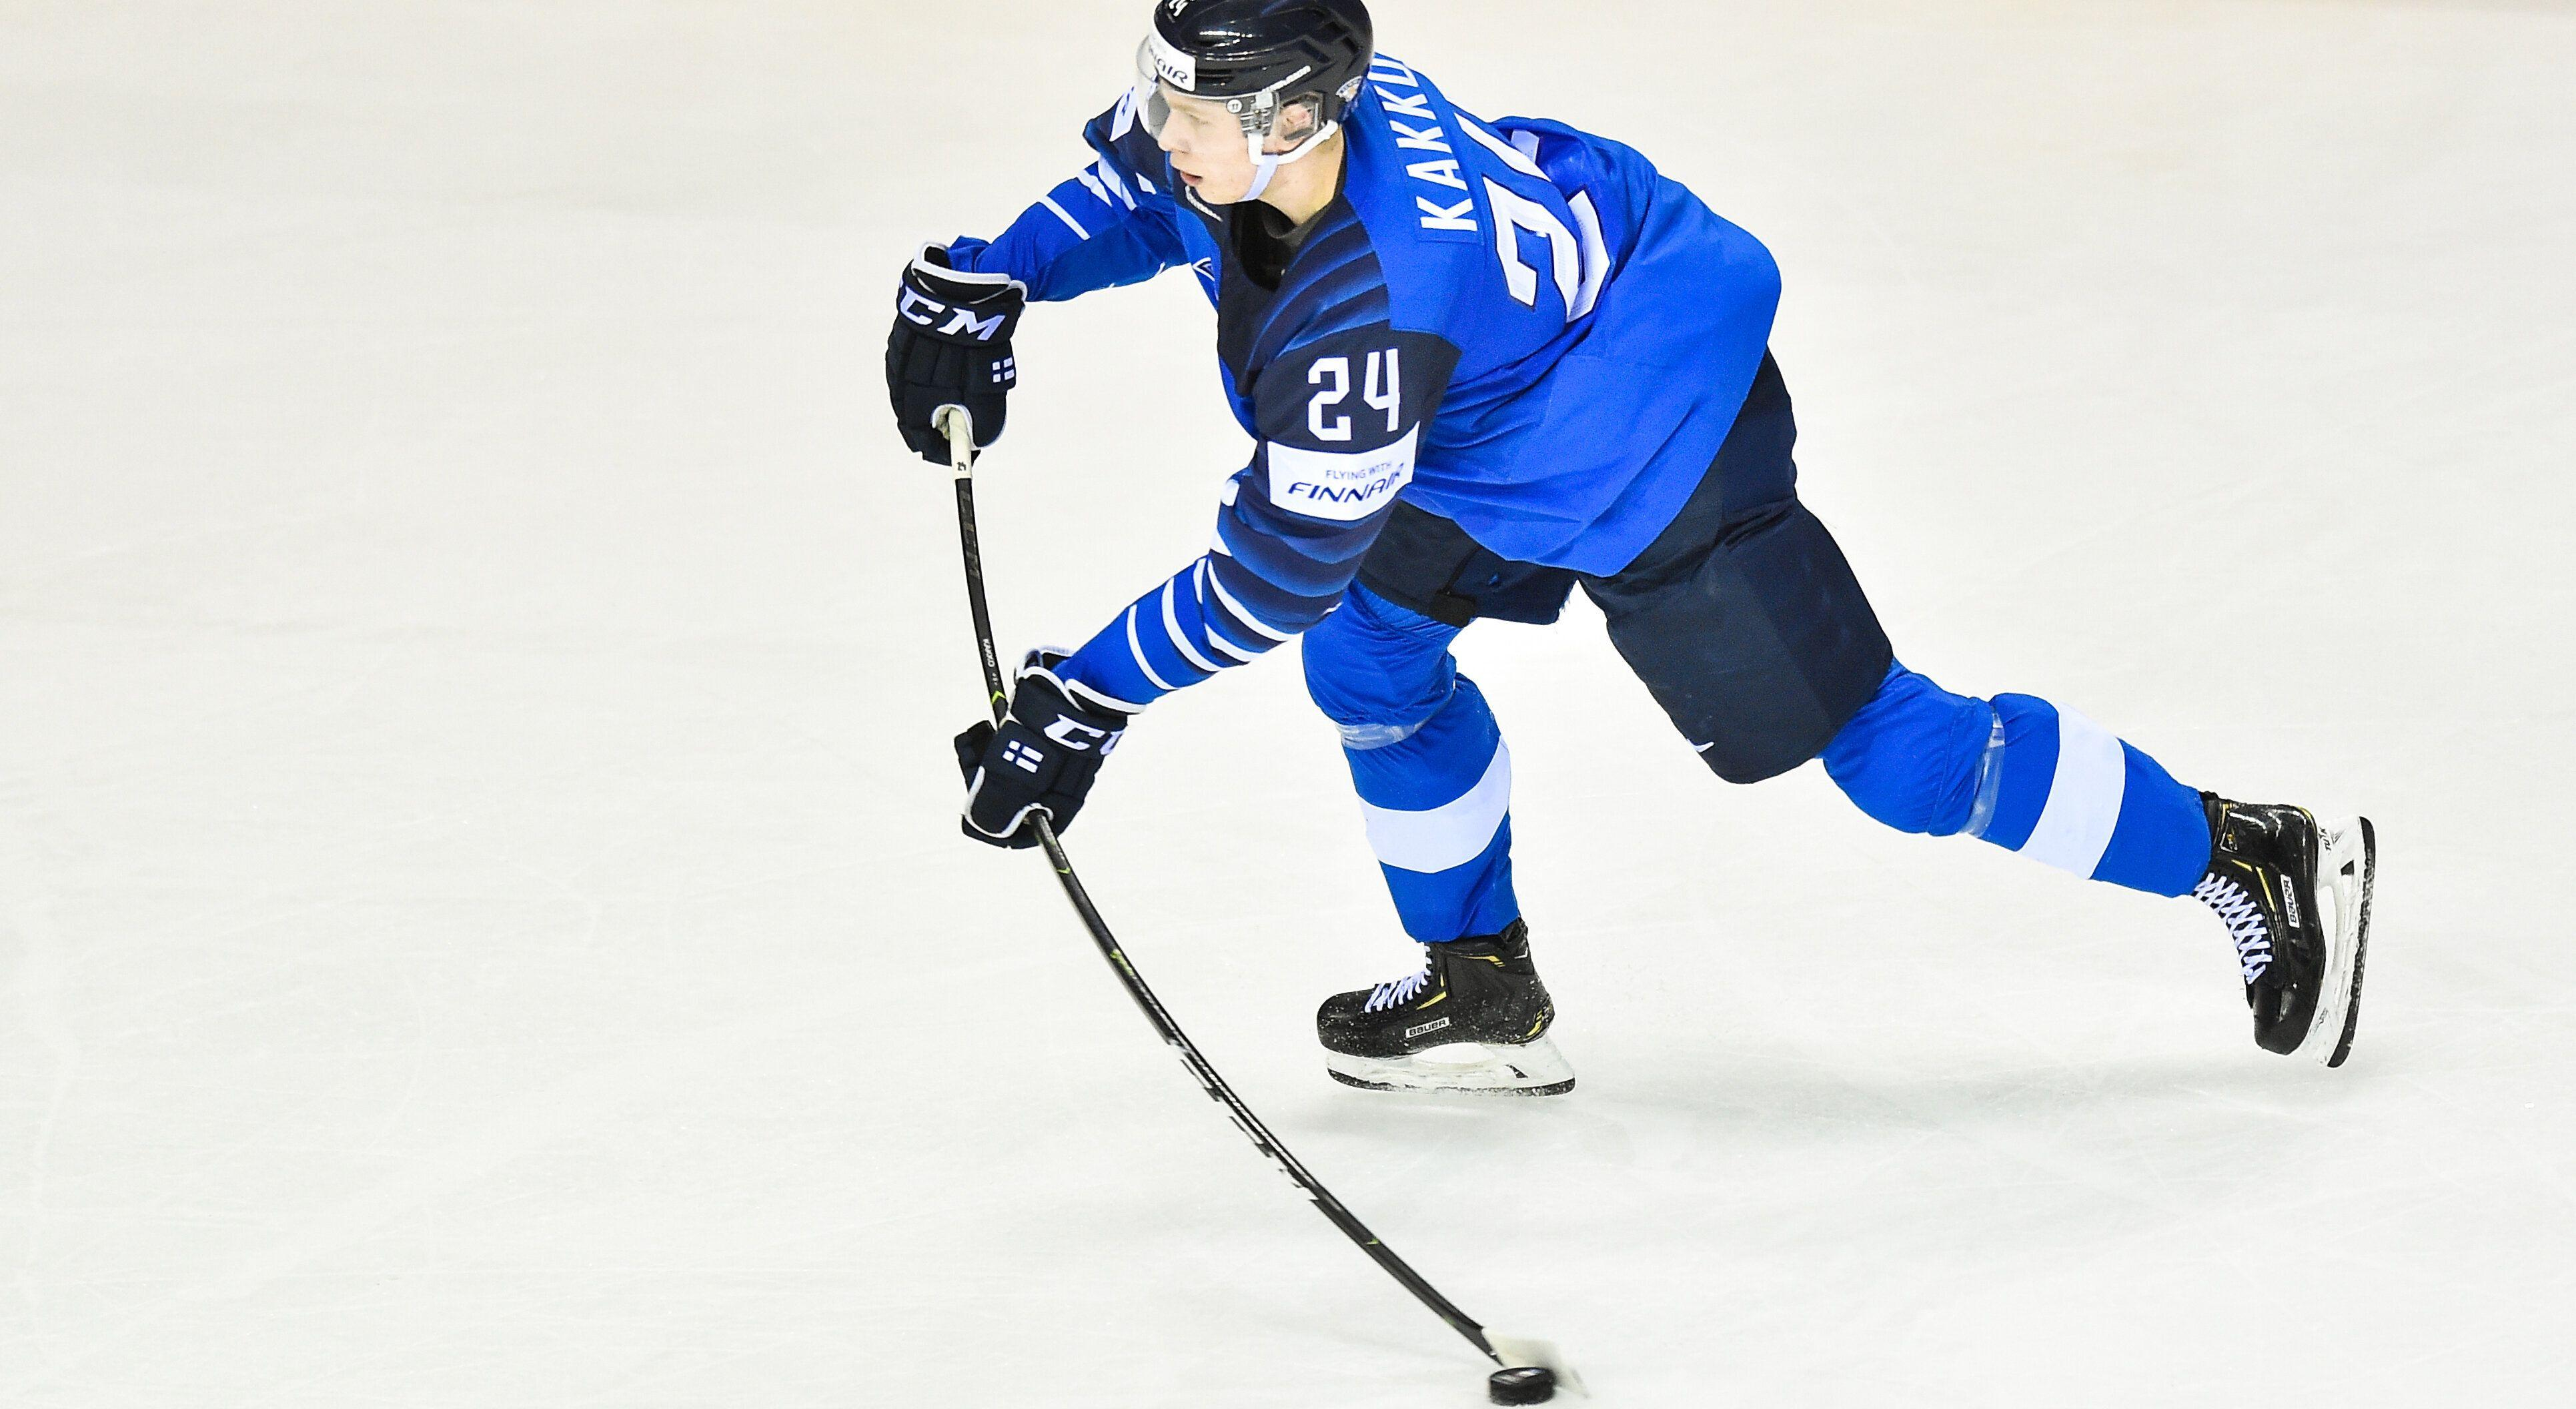 Kaapo Kakko believes he could go first overall at NHL Entry Draft